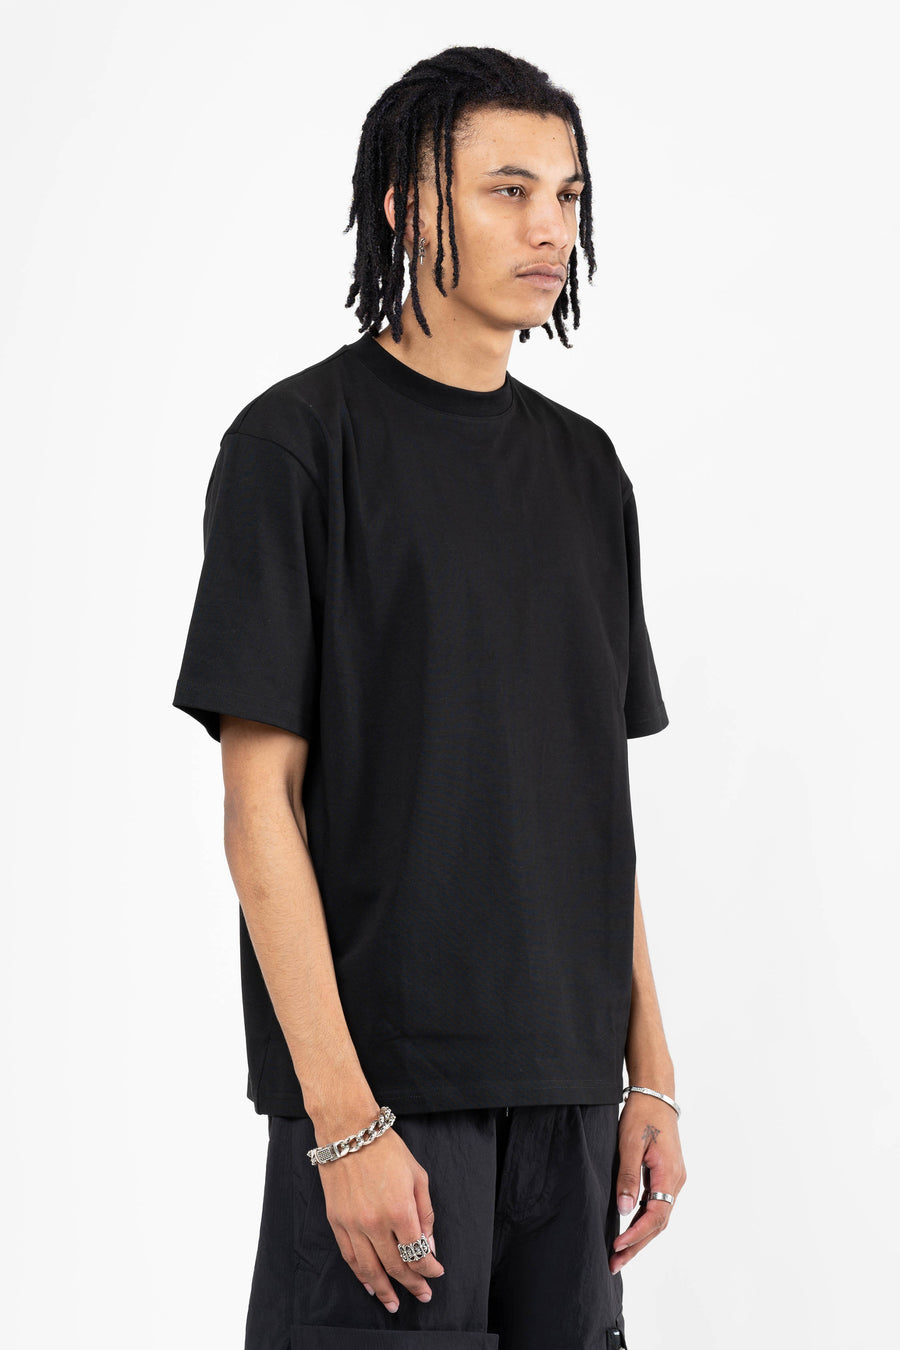 Mw Vs x Mountain Research G Fit Tee Black